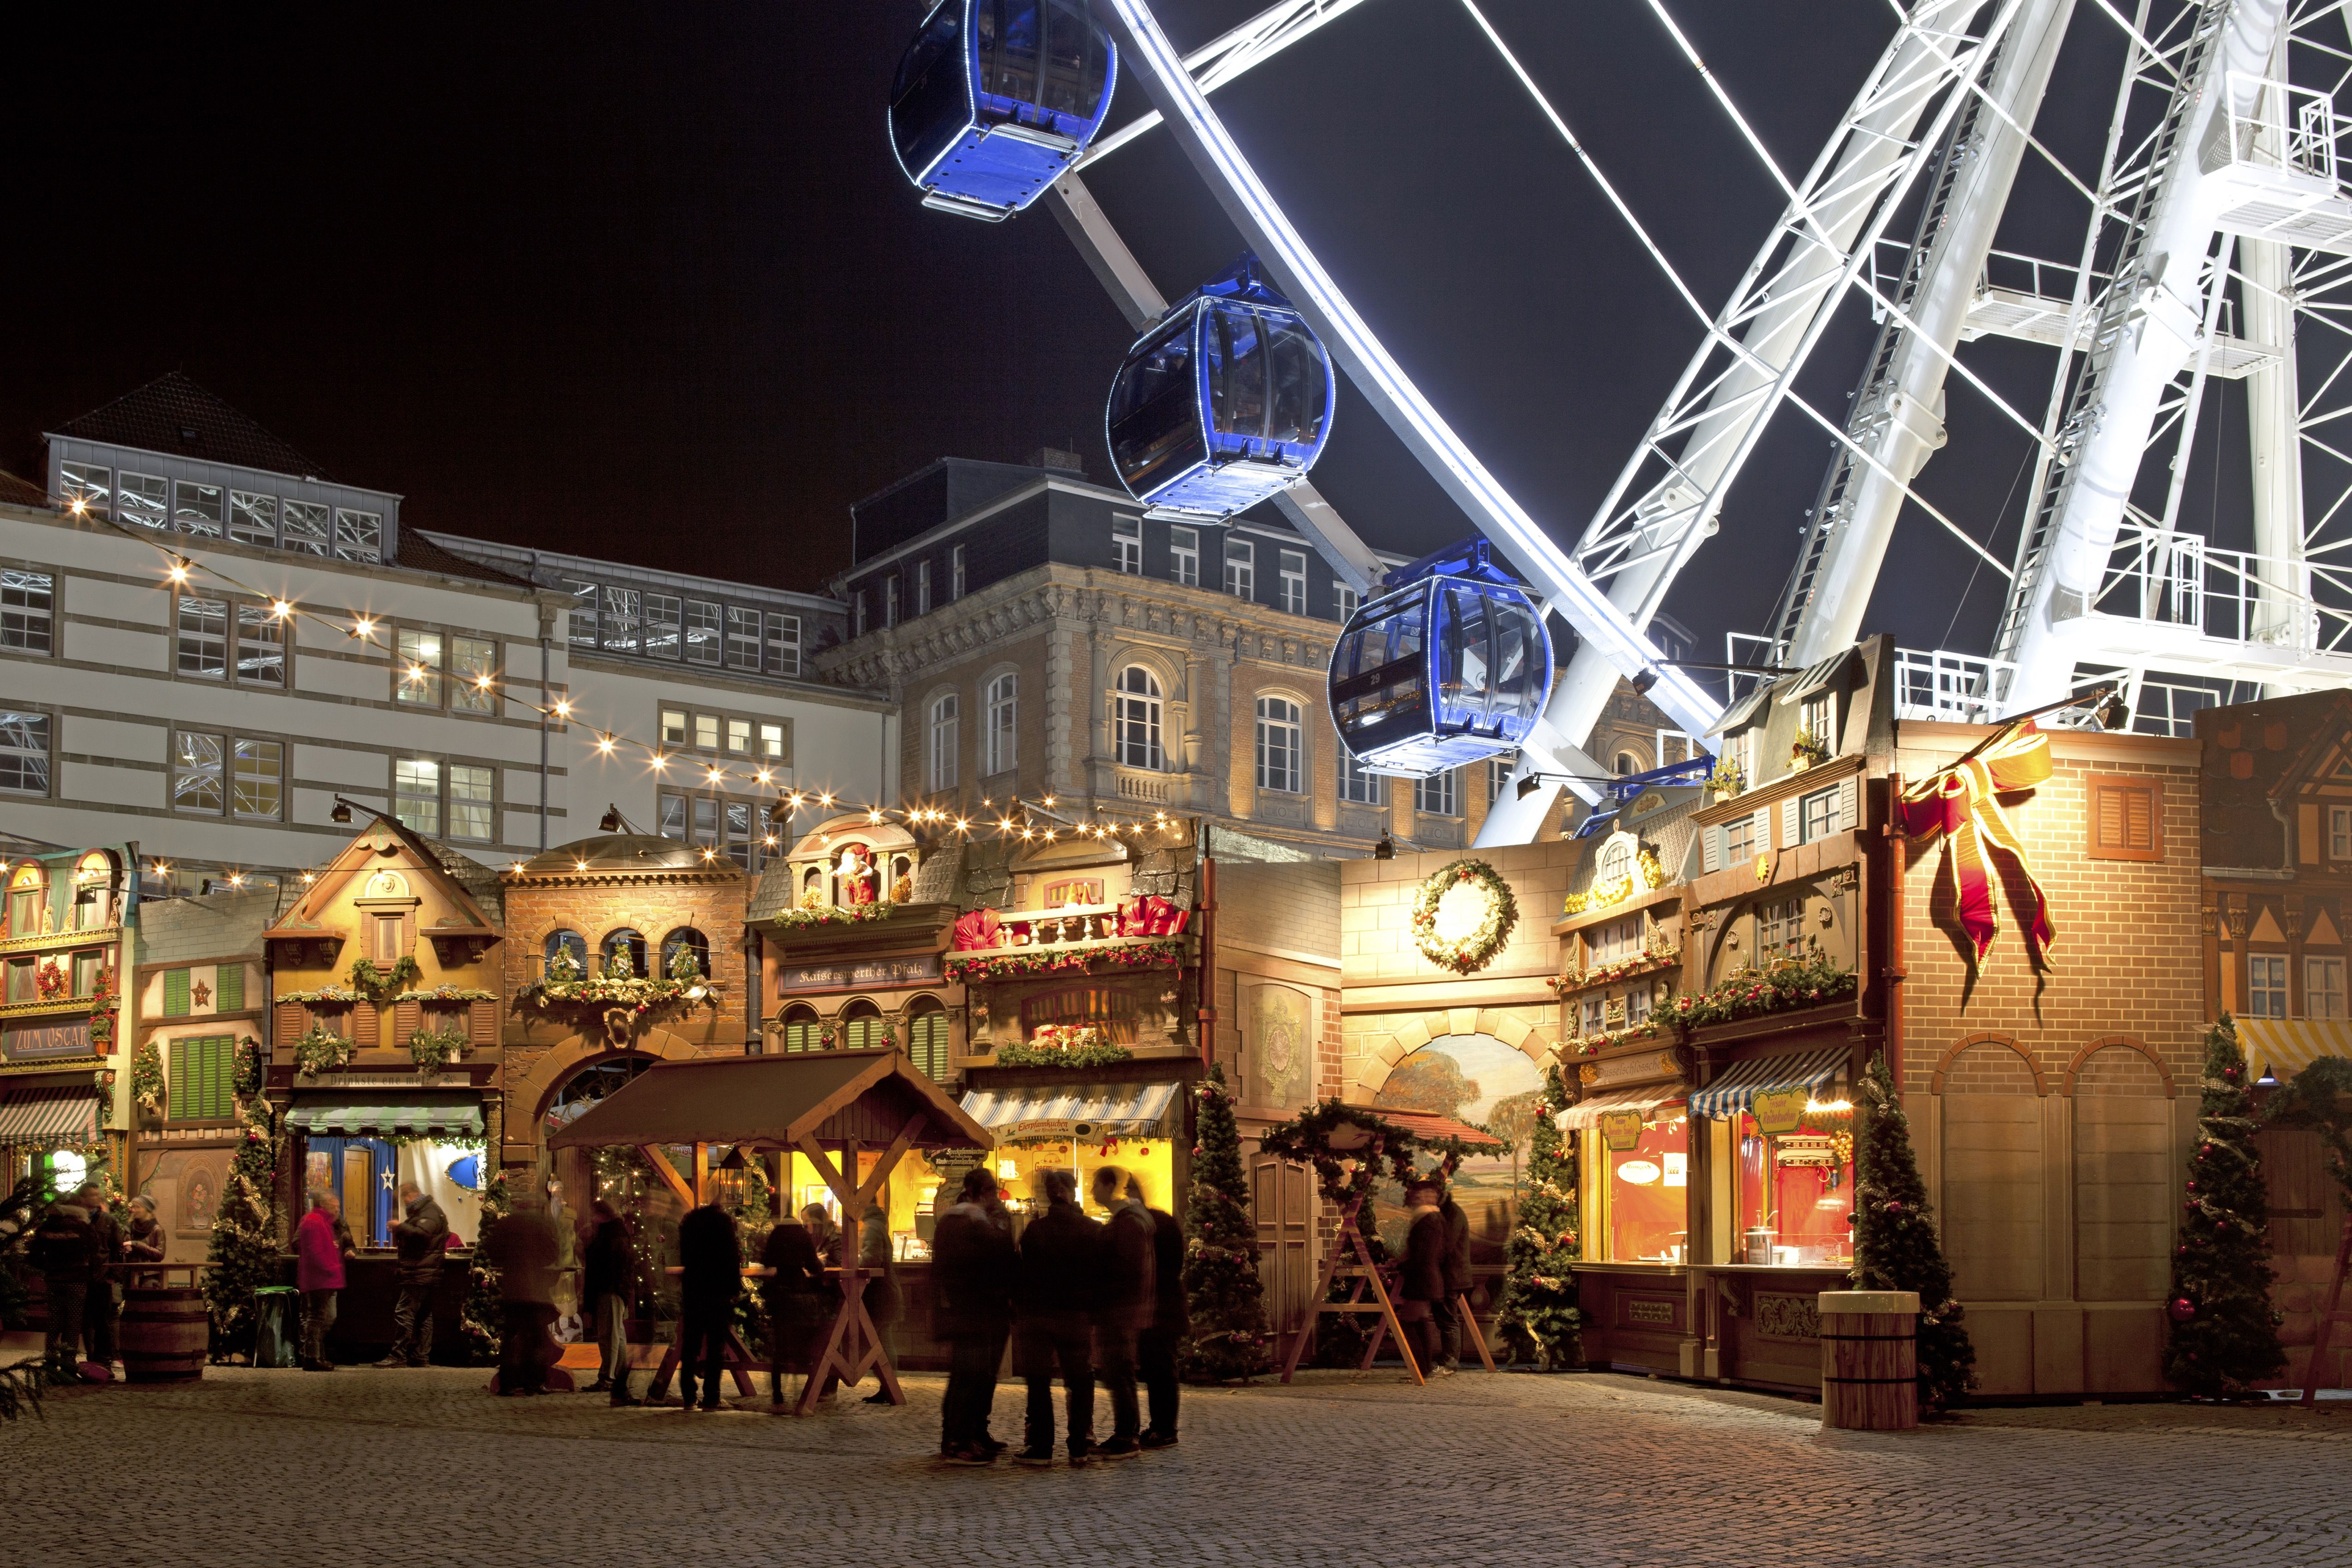 Christmas Market And Ferris Wheel In The Old Town Of Dusseldorf